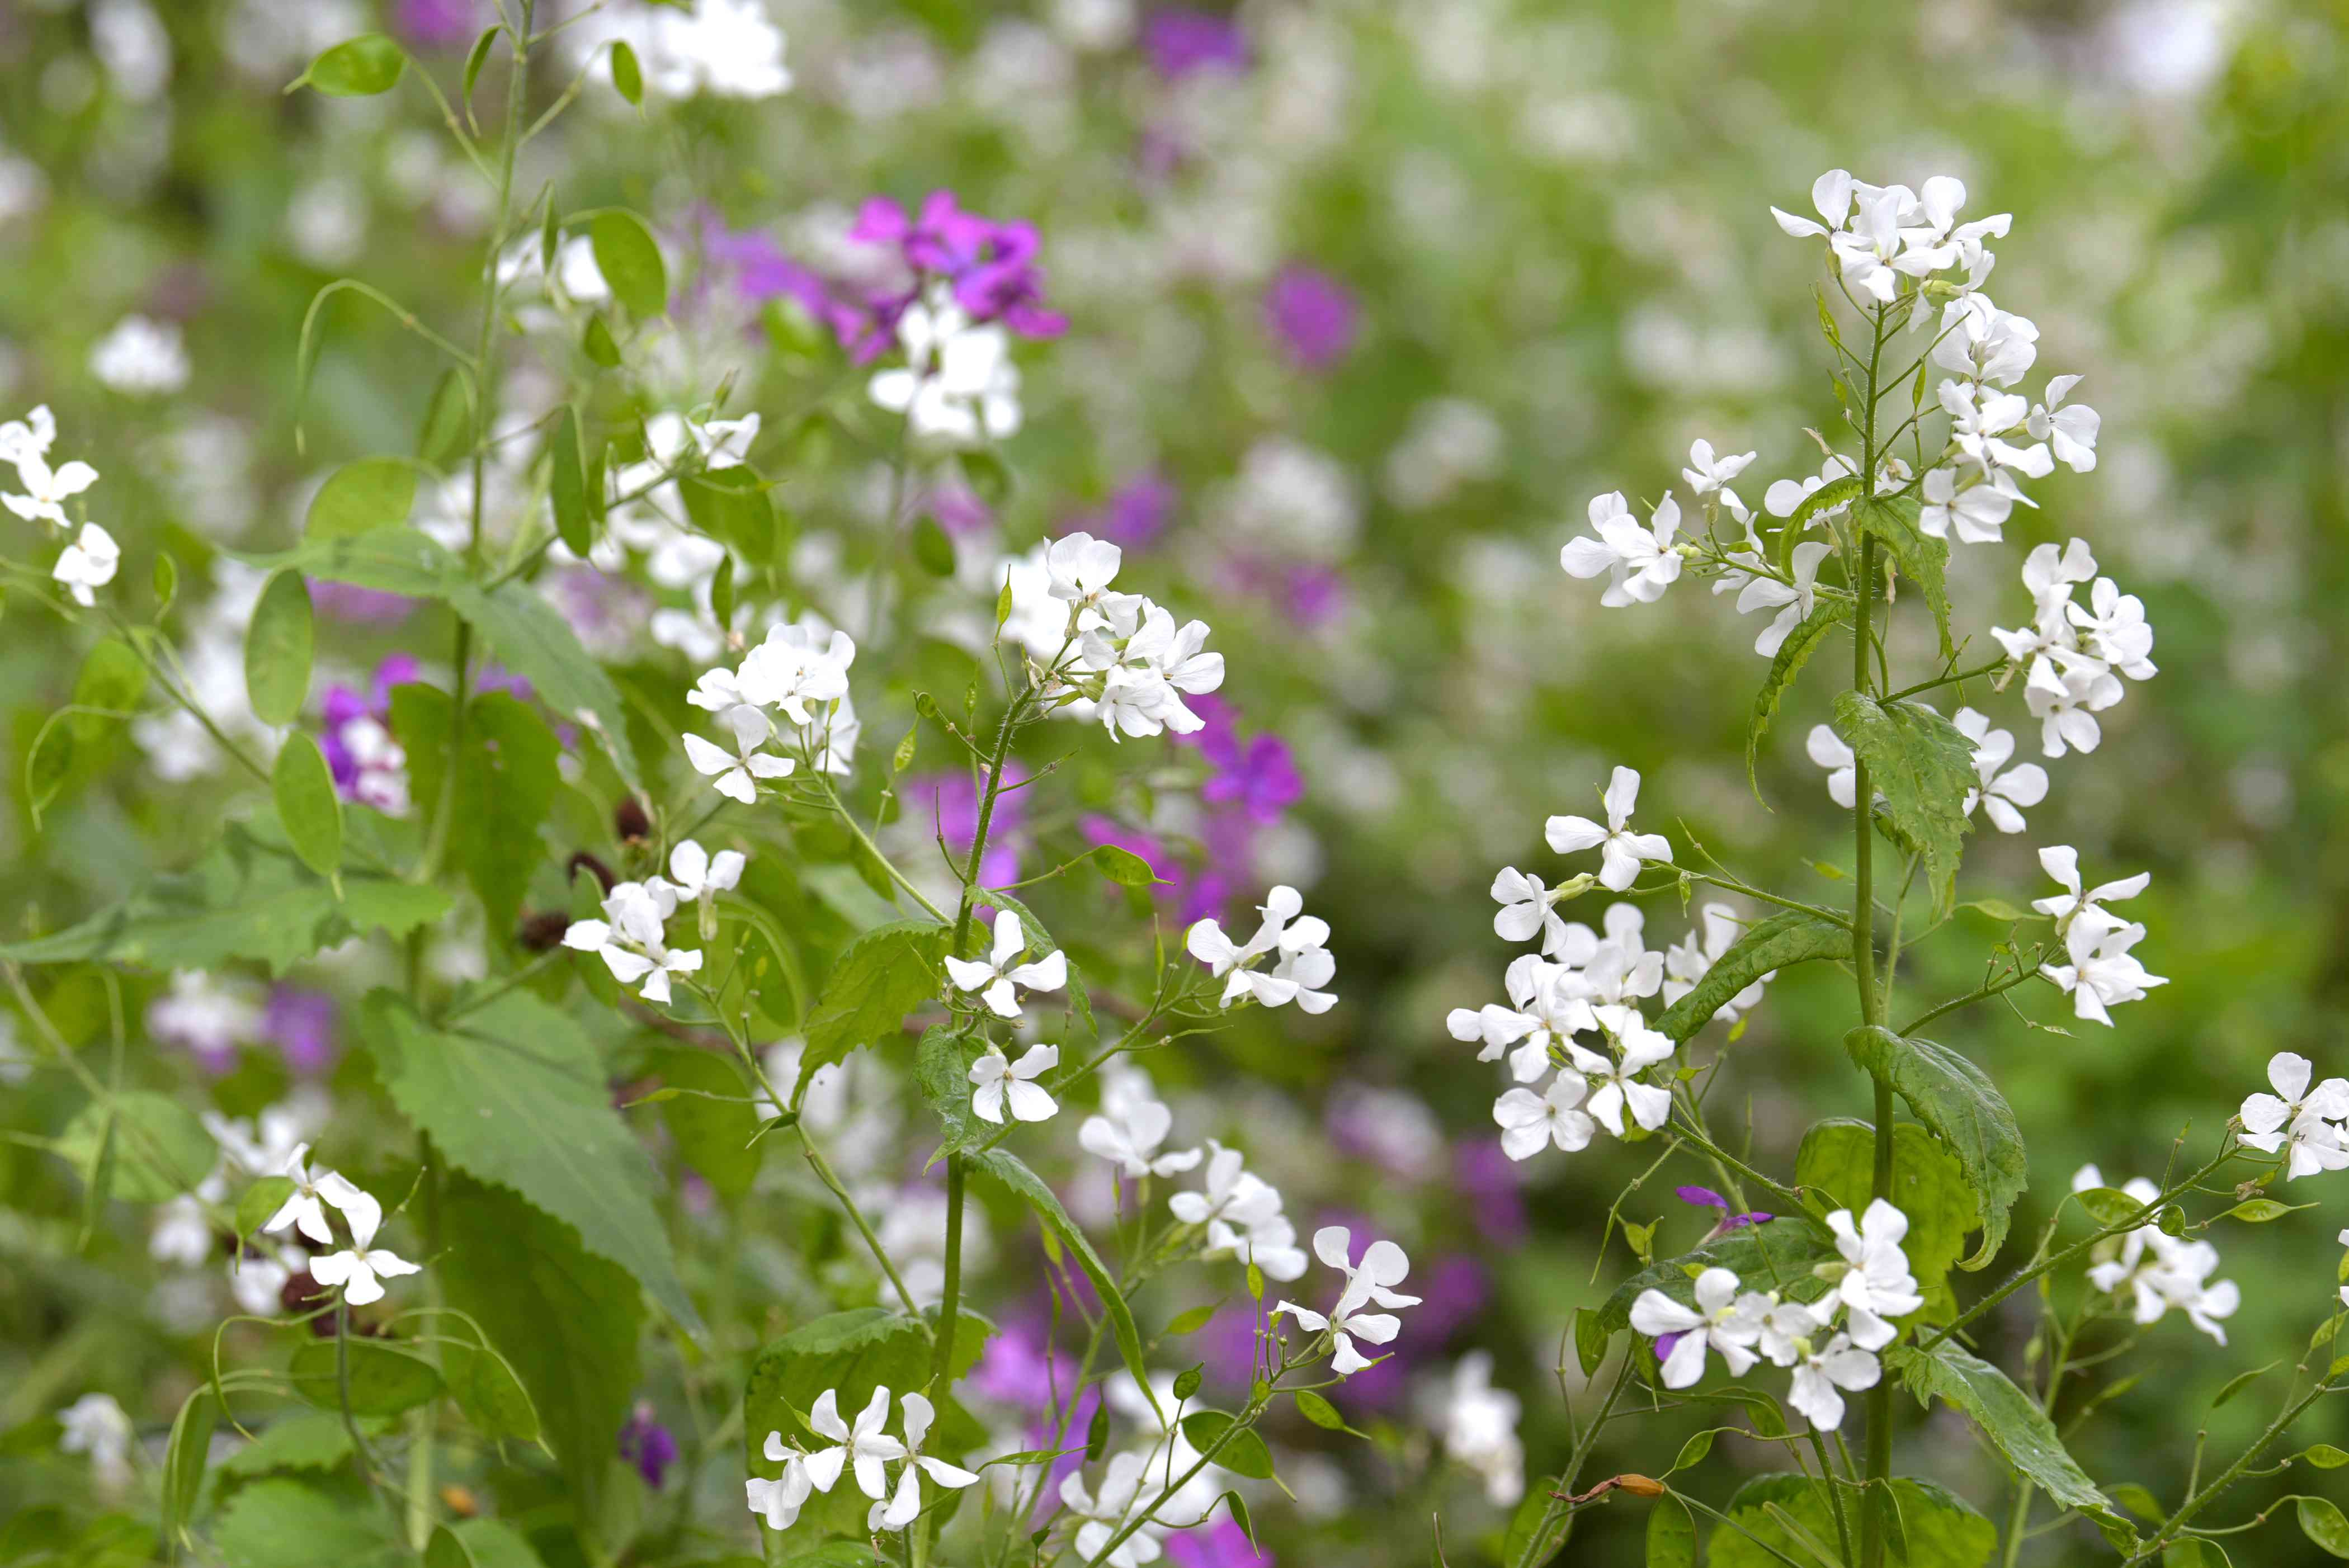 Lunaria plant with small white and purple flowers on thin stems